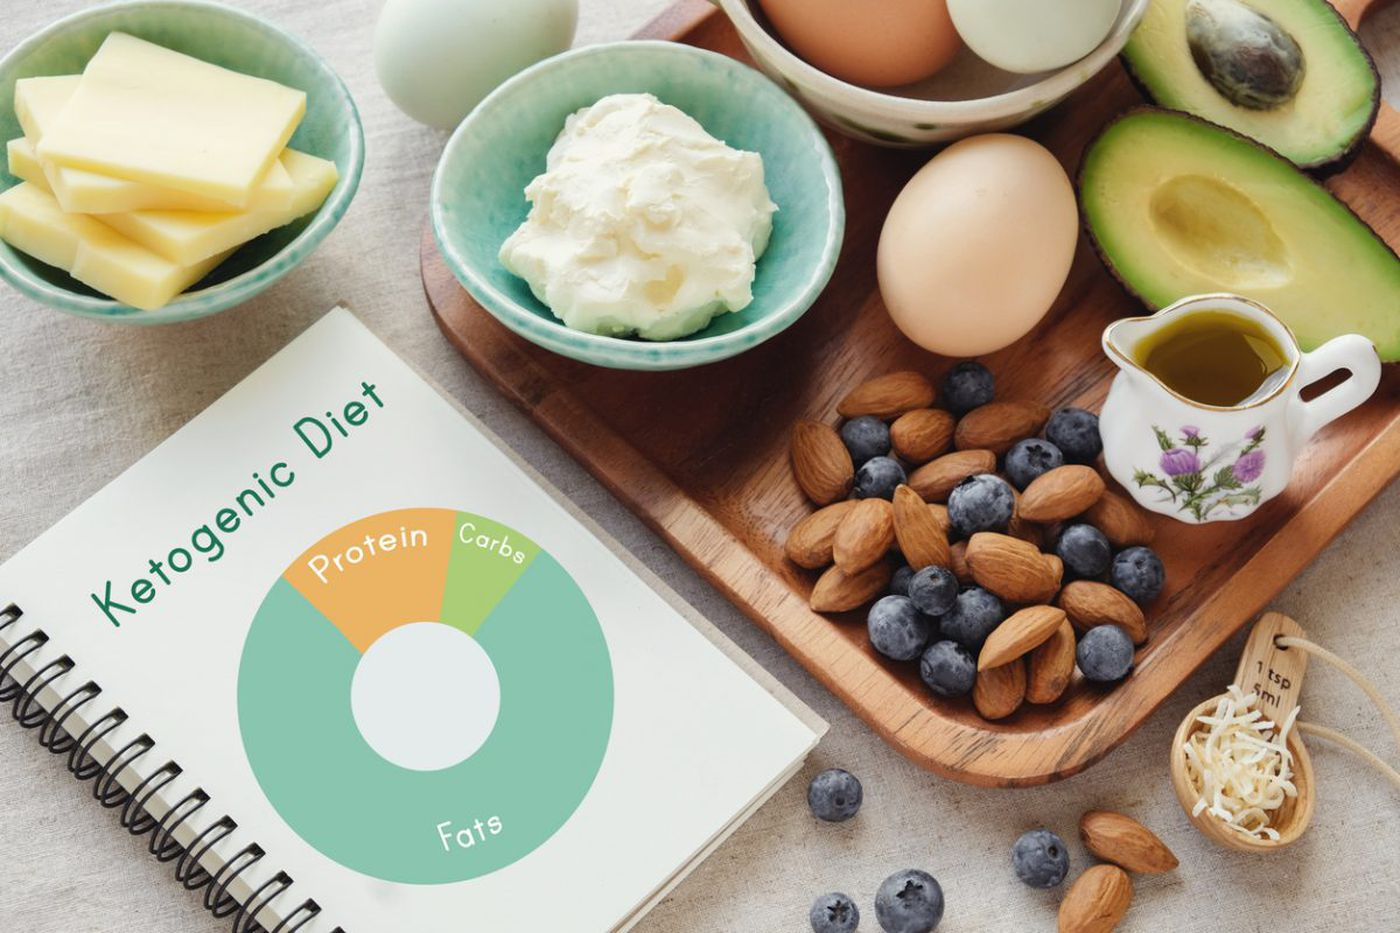 Paleo, keto, fasting, Whole30: Why food tribes are on the rise